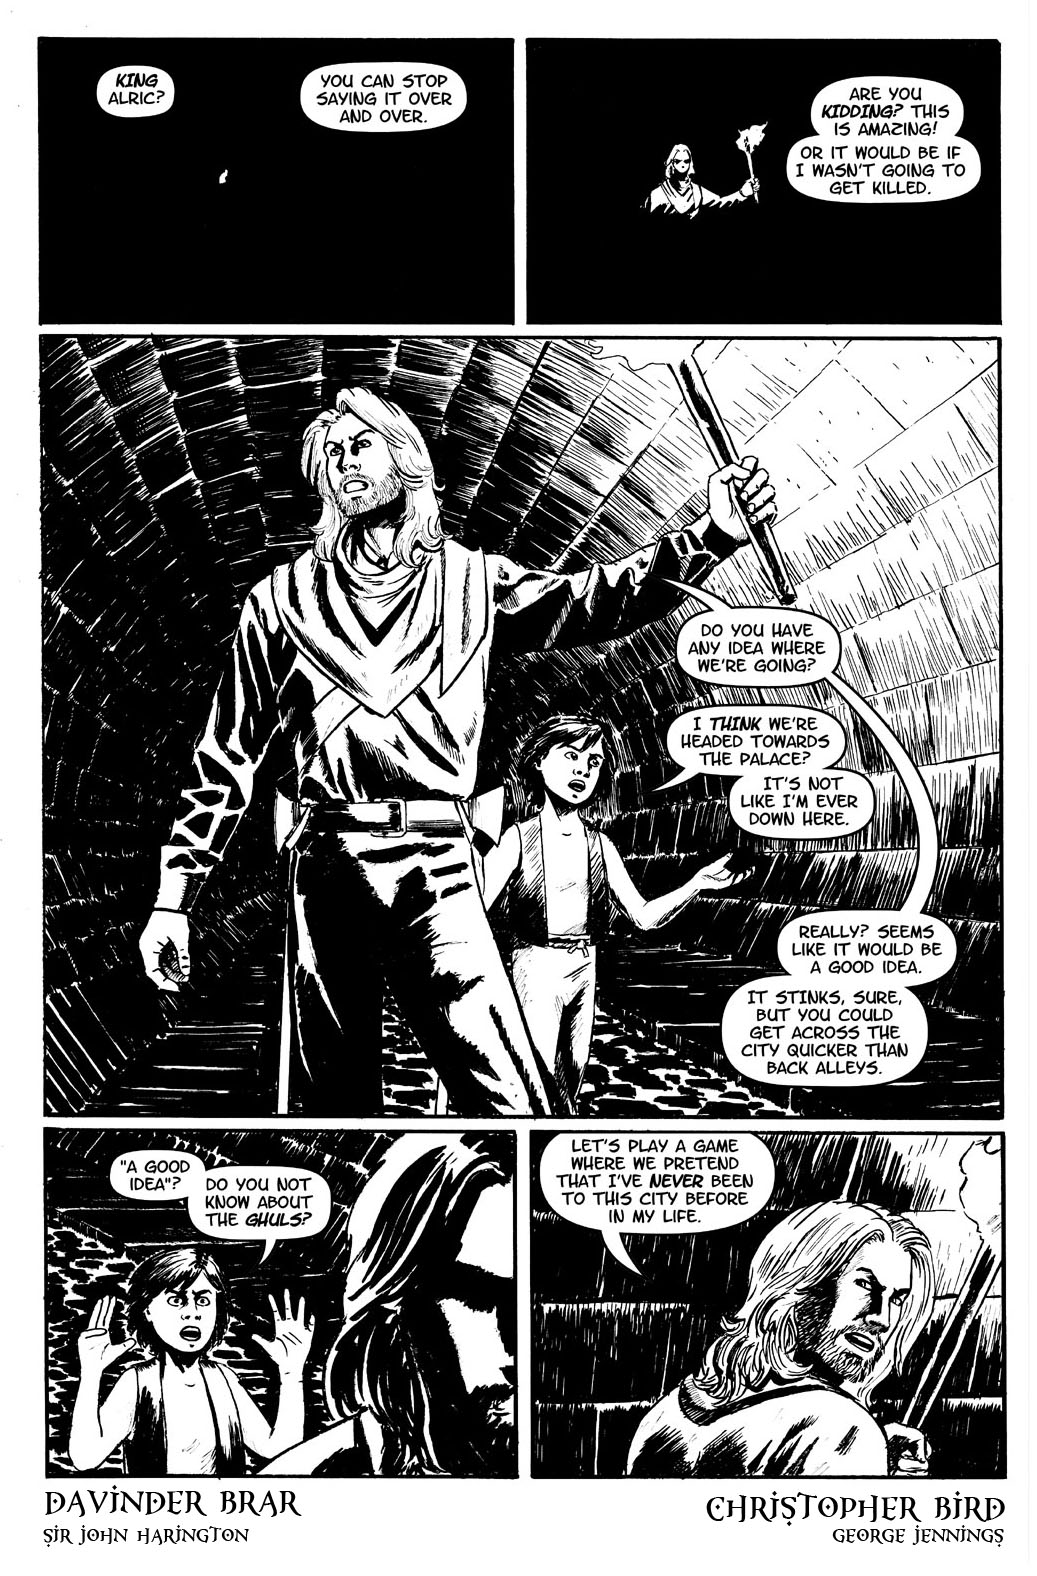 Book 4, page 13